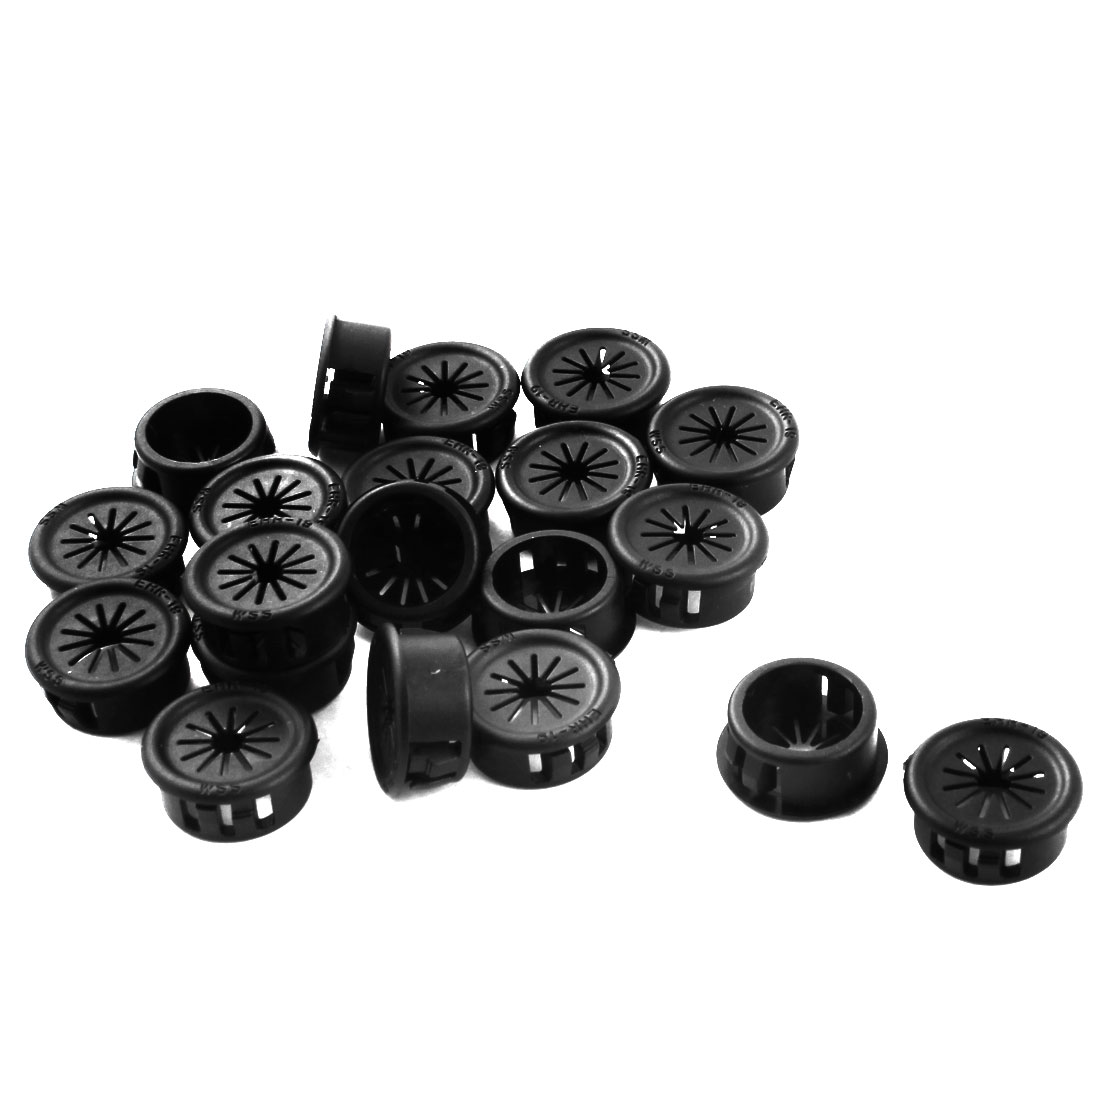 19mm Plastic Snap in Mounting Cable Bushing Protection Grommet 20 Pcs